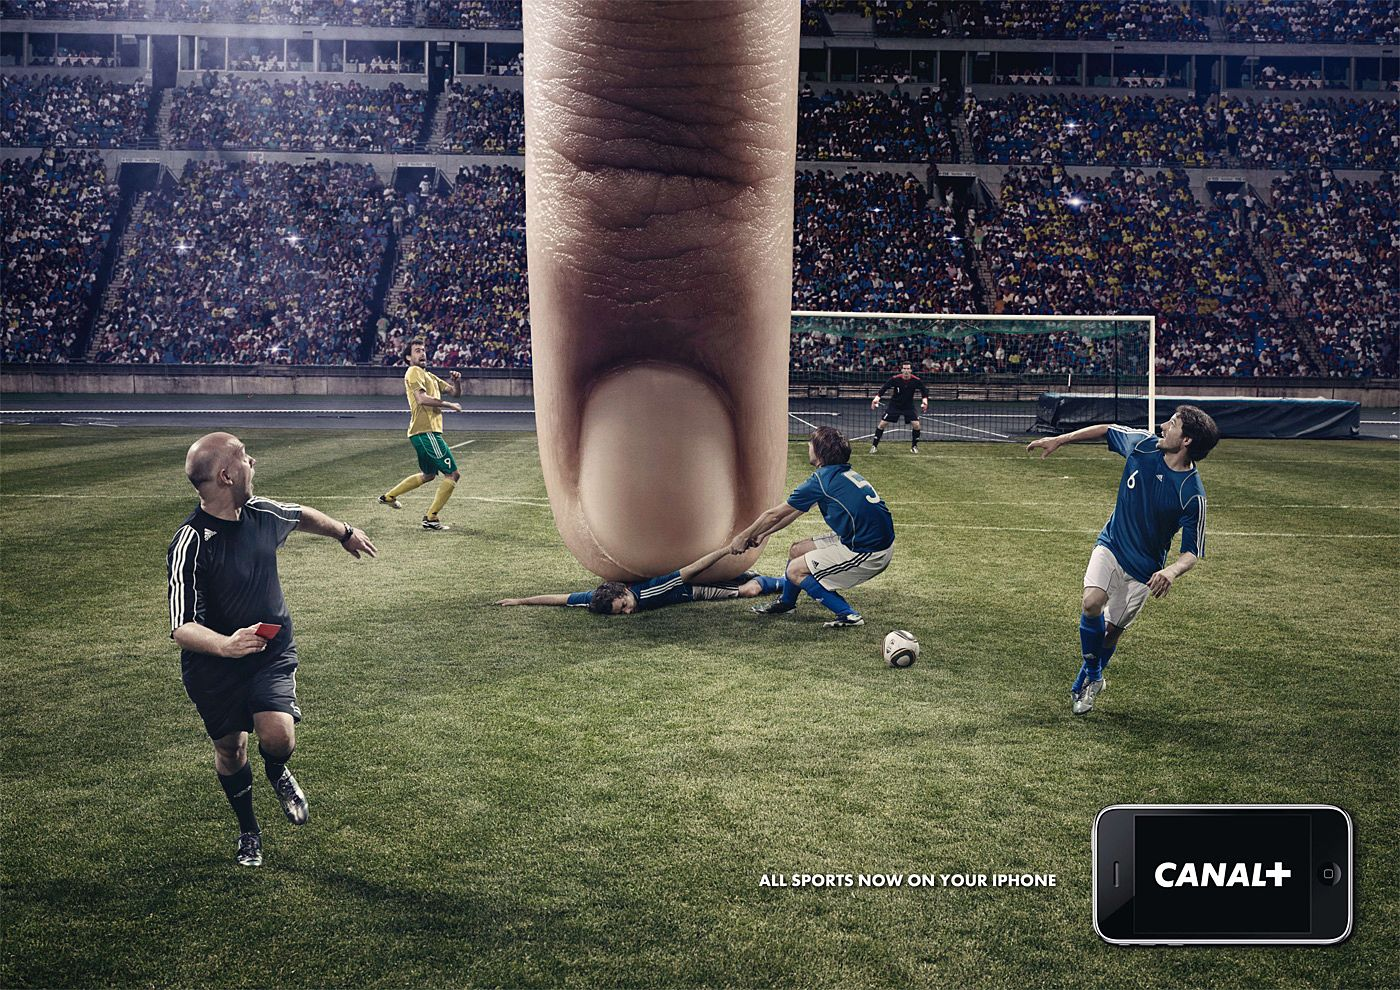 """""""All sports now in your phone""""    Such creativity! I love this idea. BBC Player as well as the swedish newspaper Sydsvenskan have had similar campaigns, but this one is definitely the funniest."""